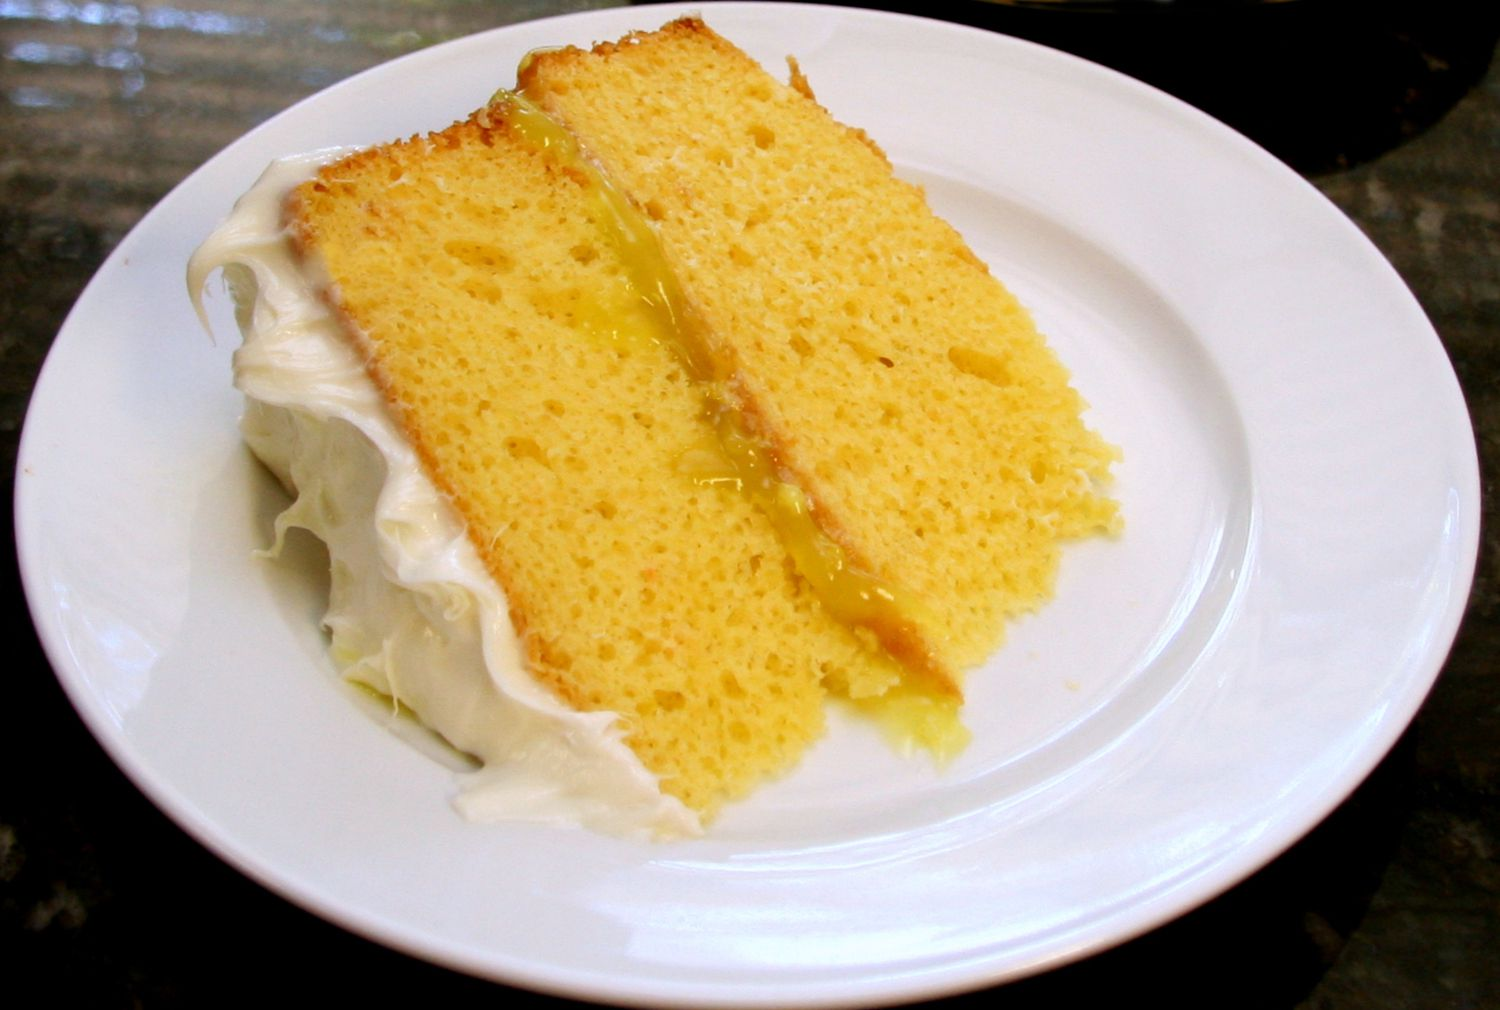 Lemon Layer Cake With Lemon Curd Filling and Cream Cheese Frosting